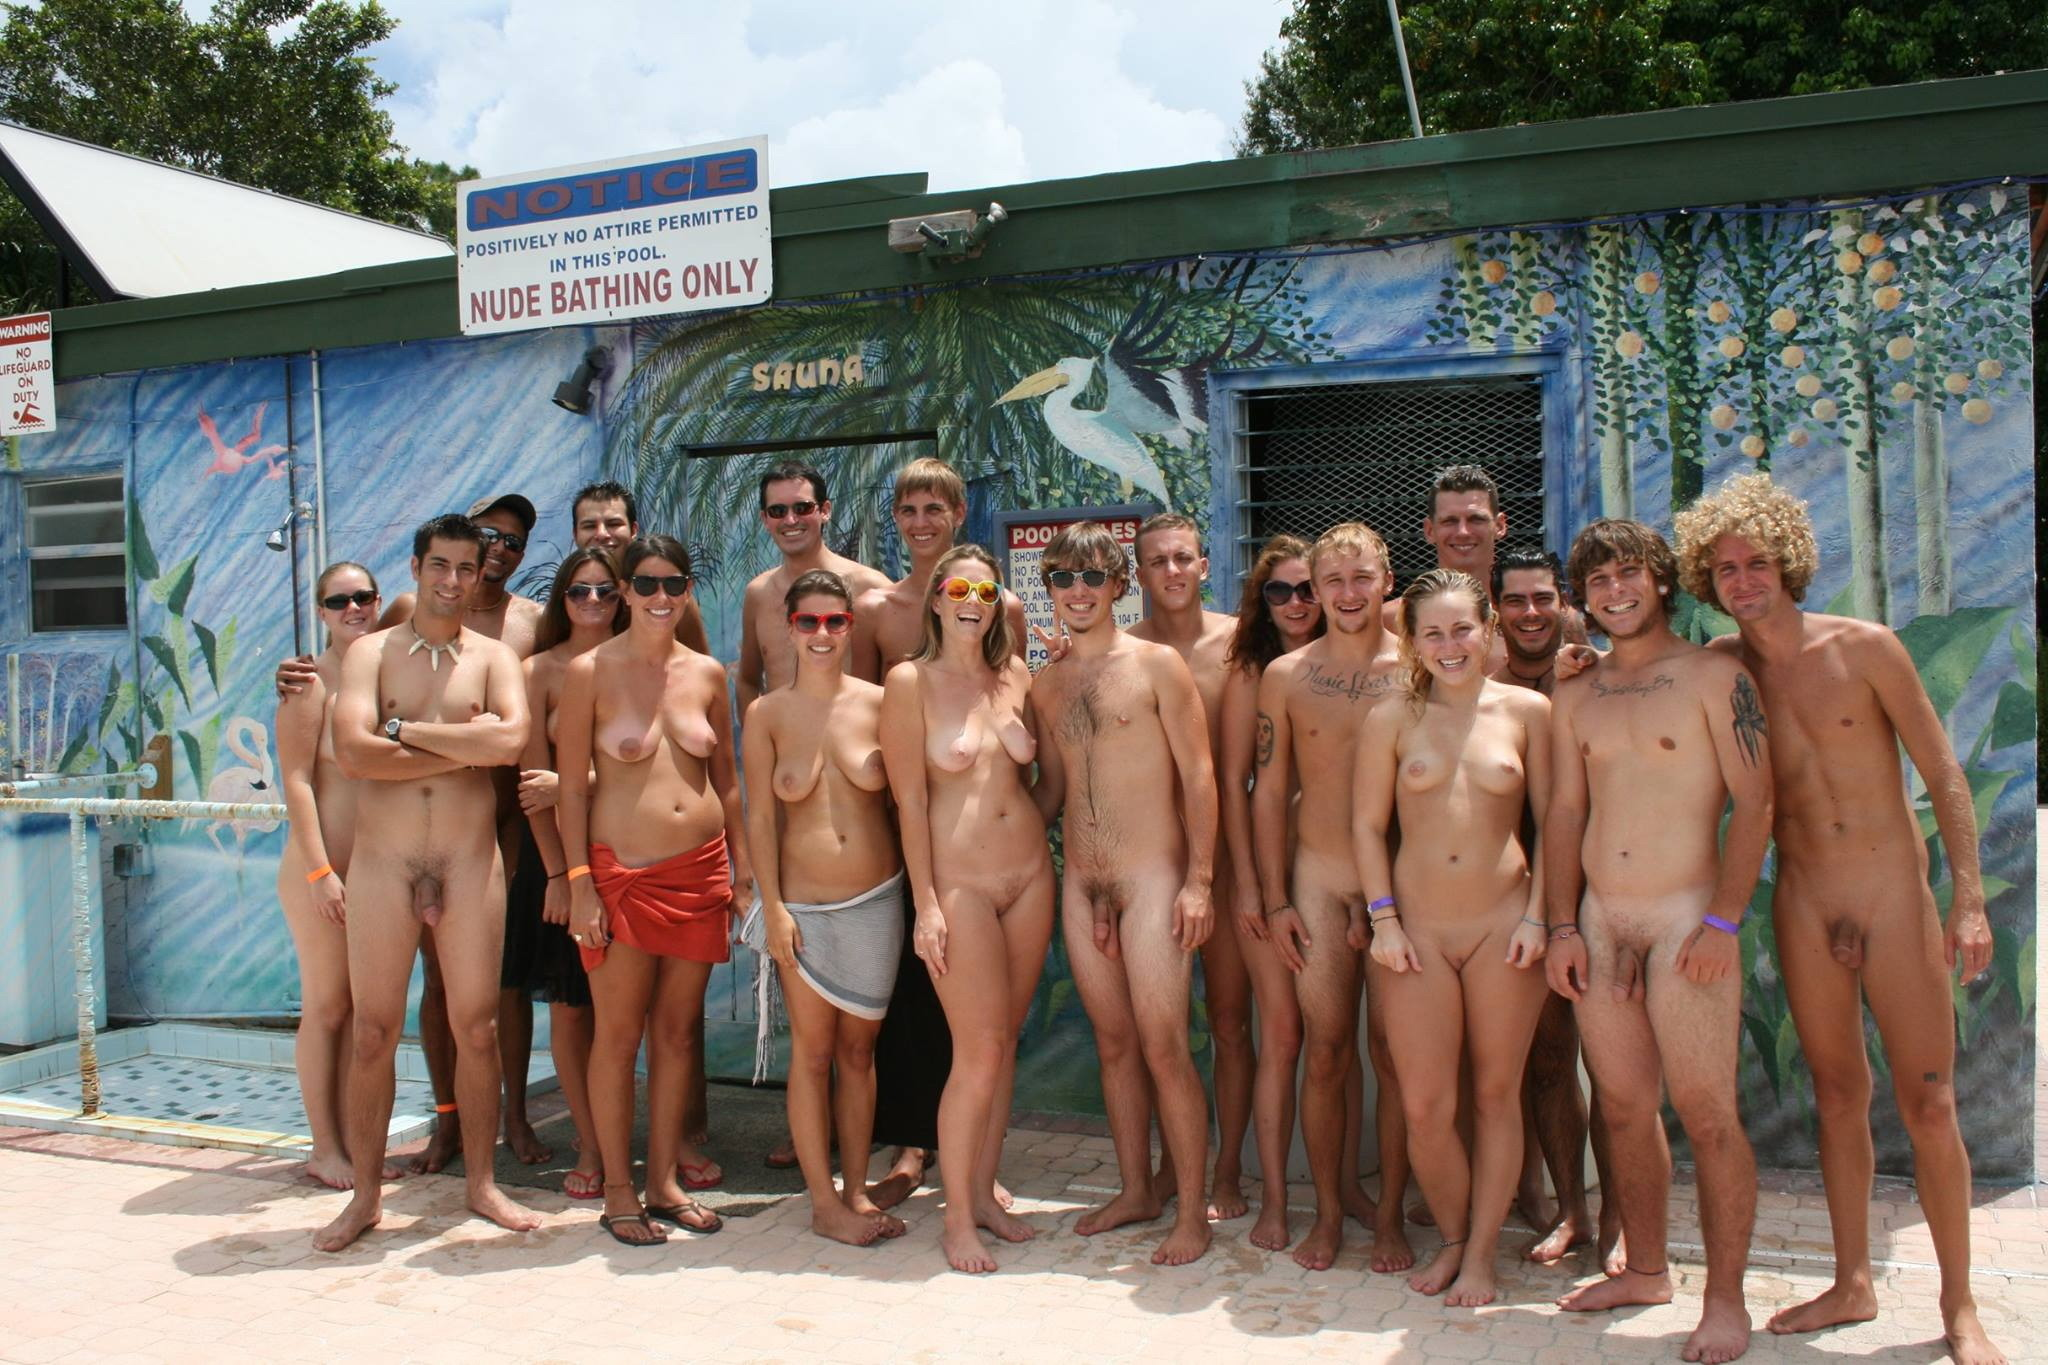 young generation nudism Nudism (August)